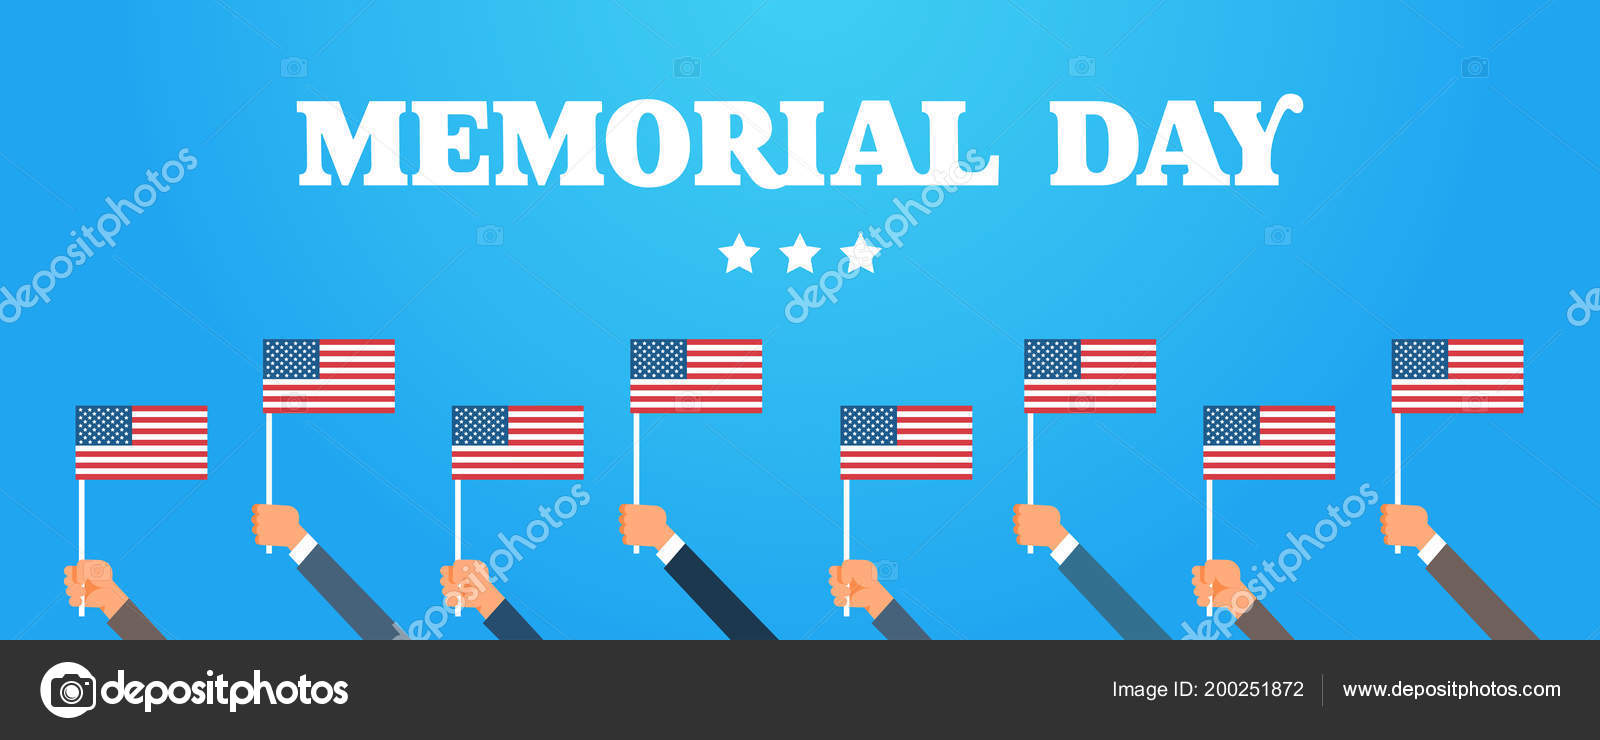 Memorial Day USA Greeting Card Wallpaper Hands Hold National American Flag With Stars On Blue Background Flat Design Vector Illustration By